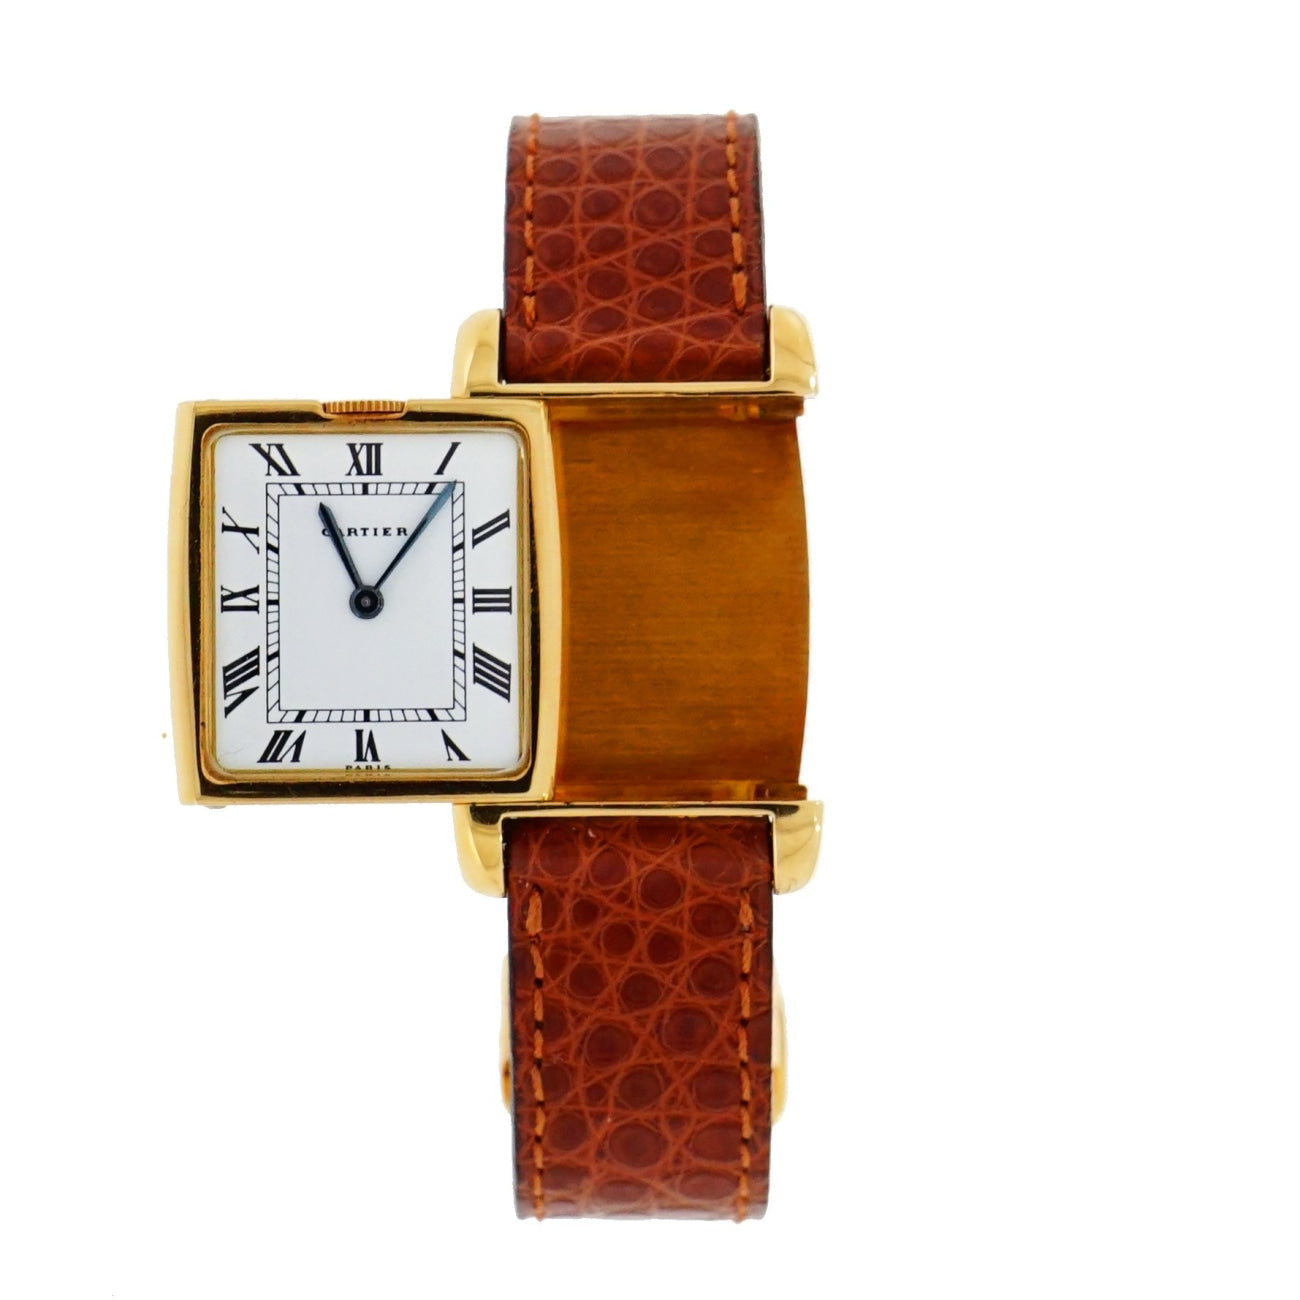 Pre-Owned Cartier Watches - Cartier Reverso Dual Time Zone in 18 karat Yellow gold | Manfredi Jewels